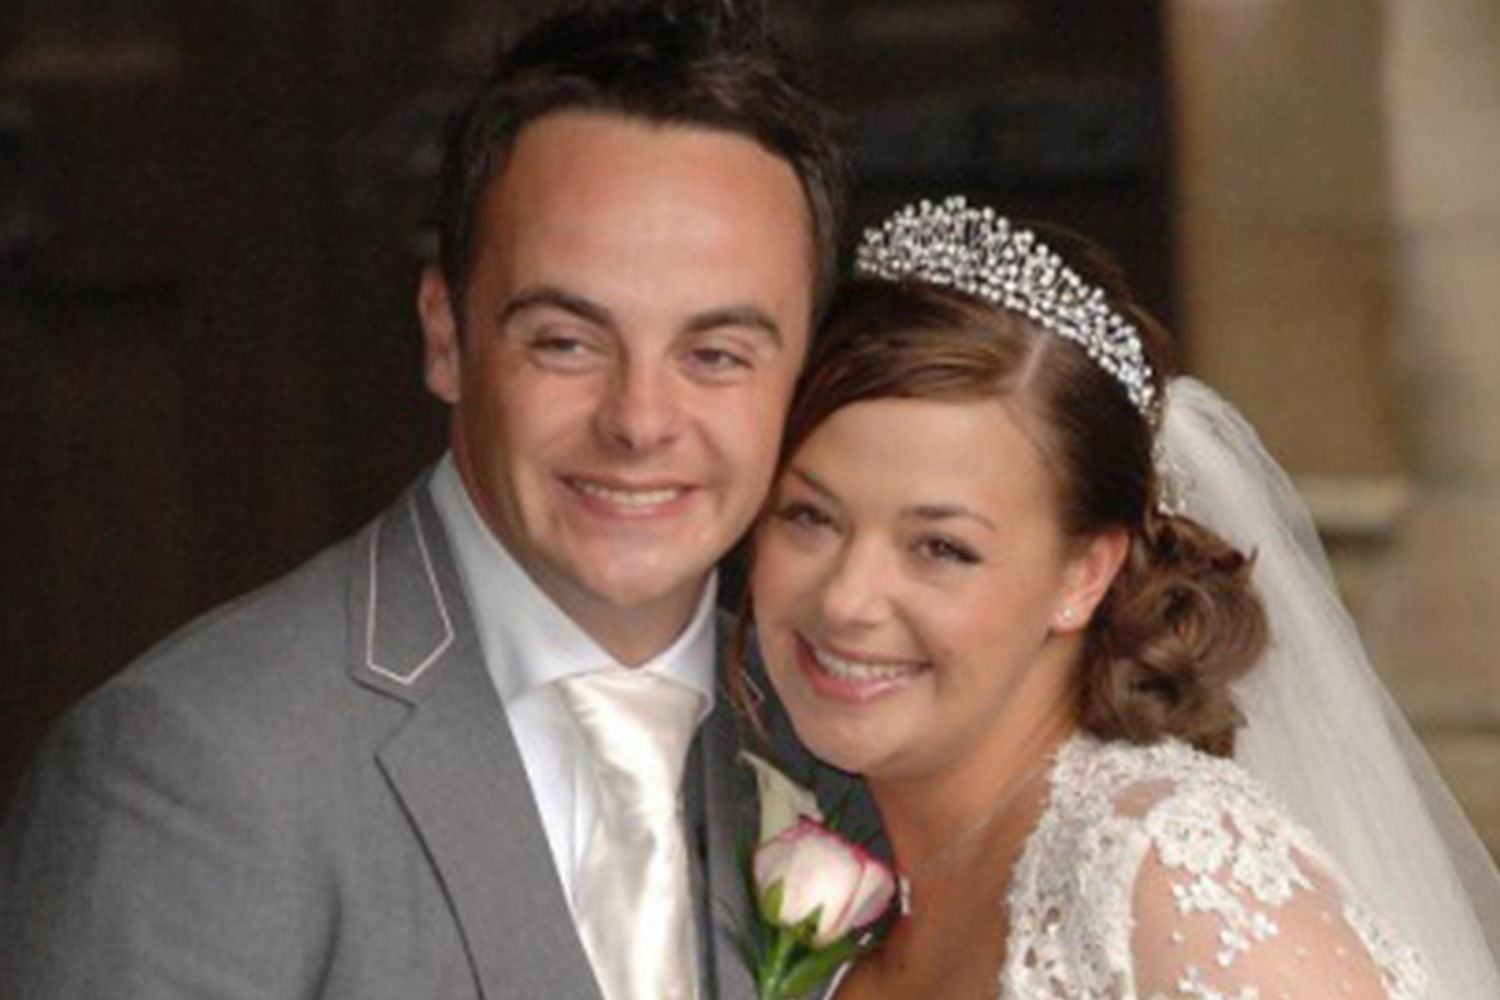 Ant McPartlin and wife Lisa Armstrong divorced in April 2020 after 12 years of marriage